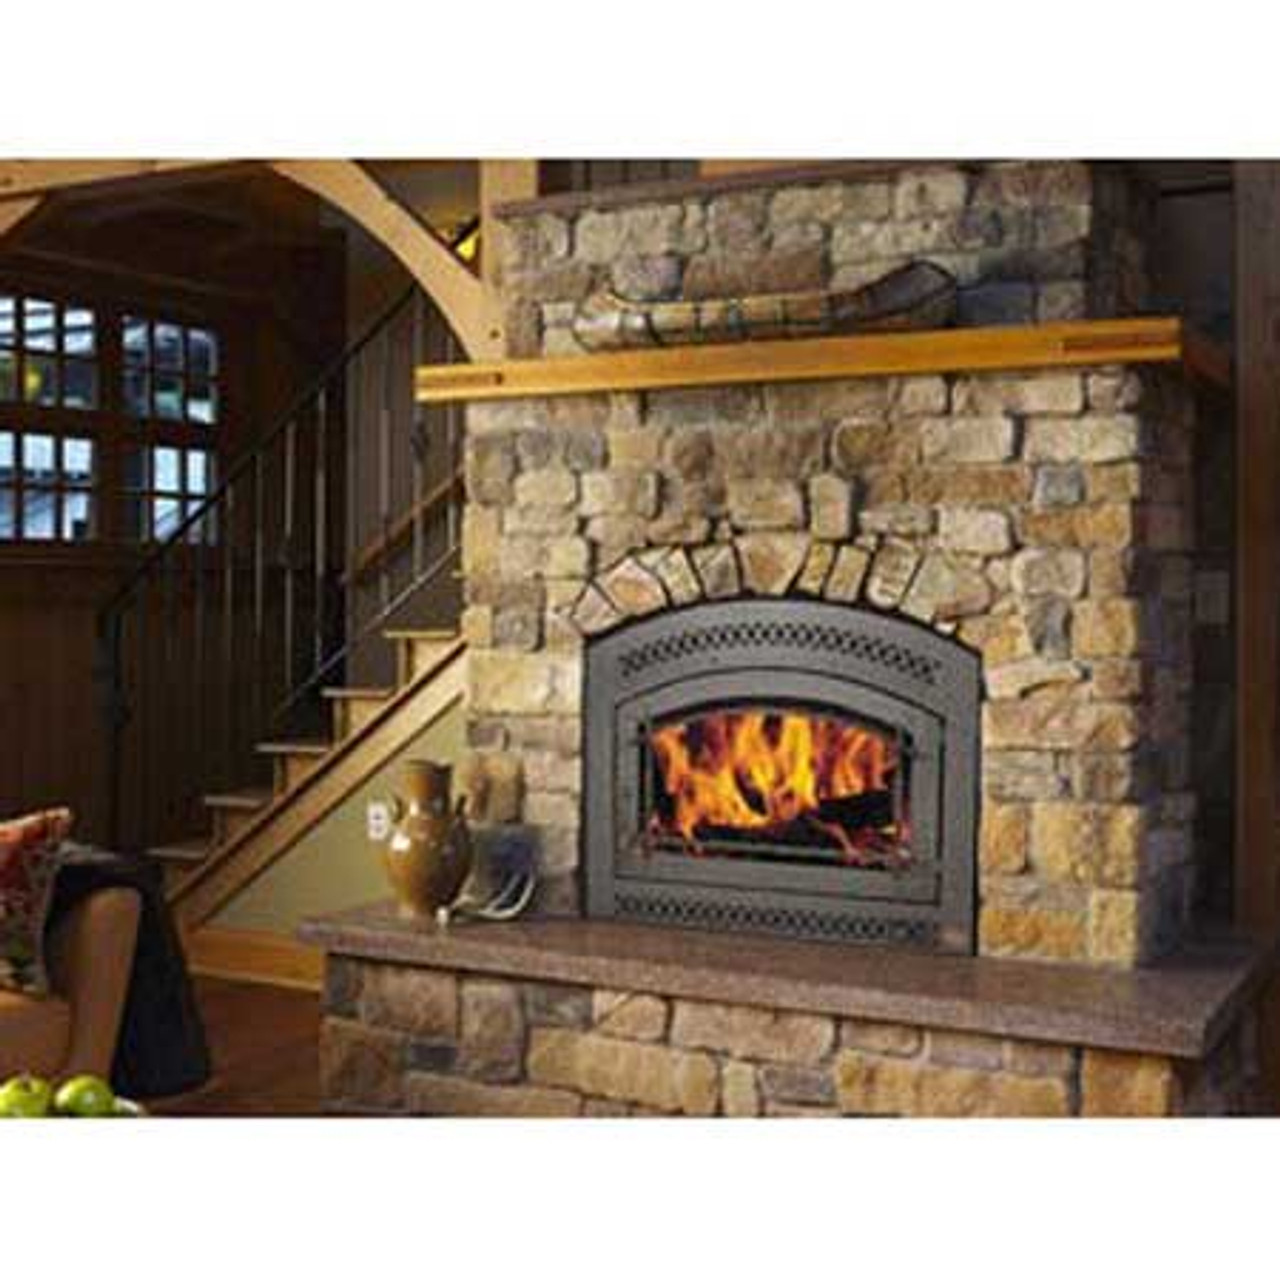 Fireplacextrordinair 36 Elite Wood Burning Fireplace 98500104